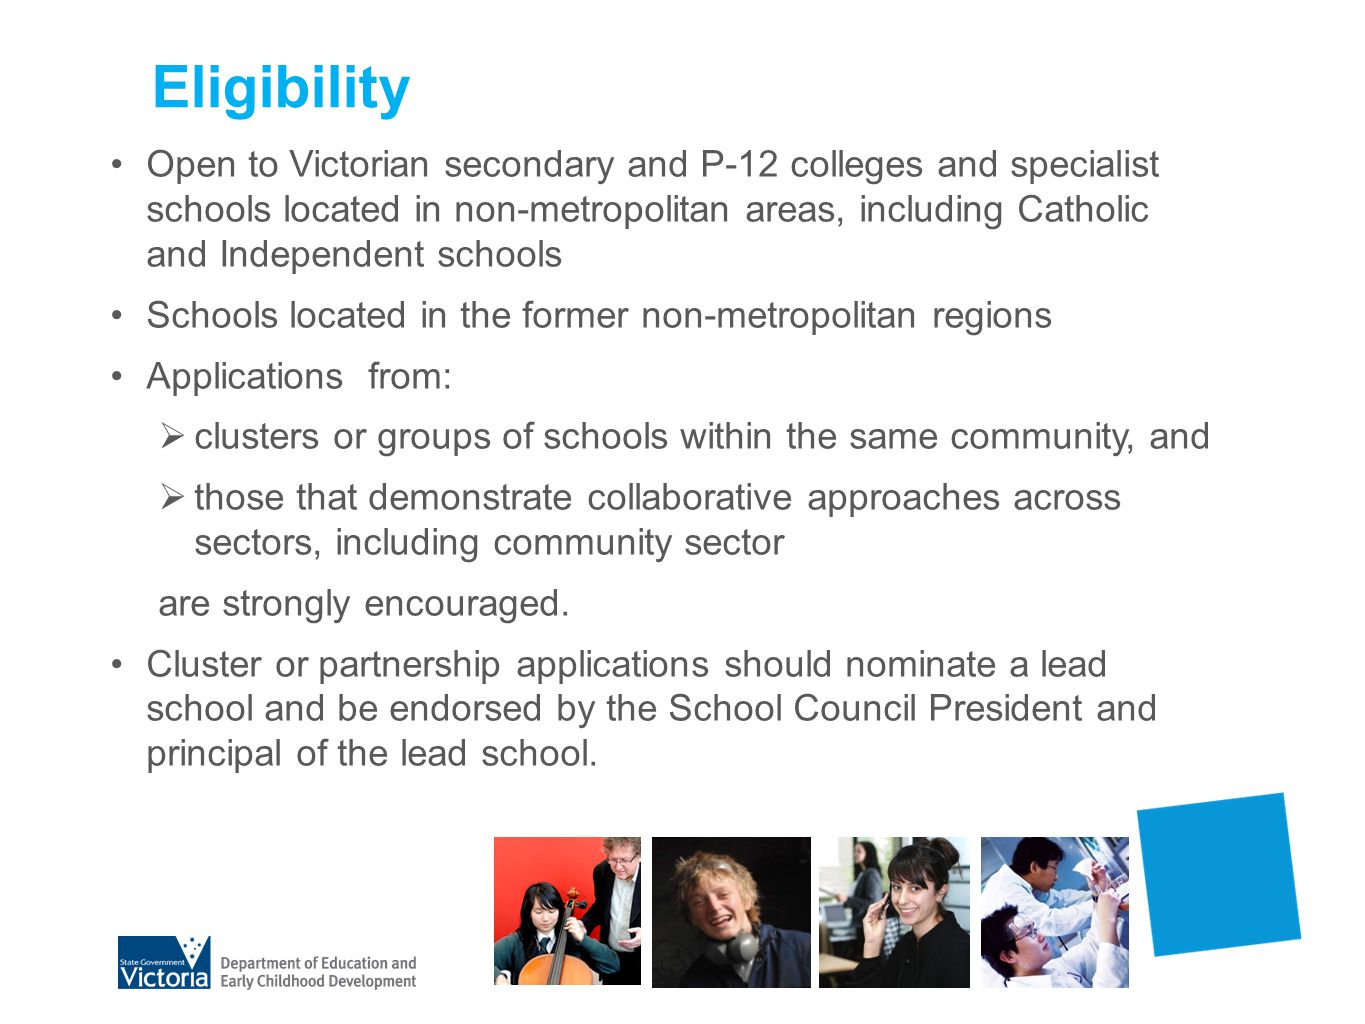 Eligibility Open to Victorian secondary and P-12 colleges and specialist schools located in non-metropolitan areas, including Catholic and Independent